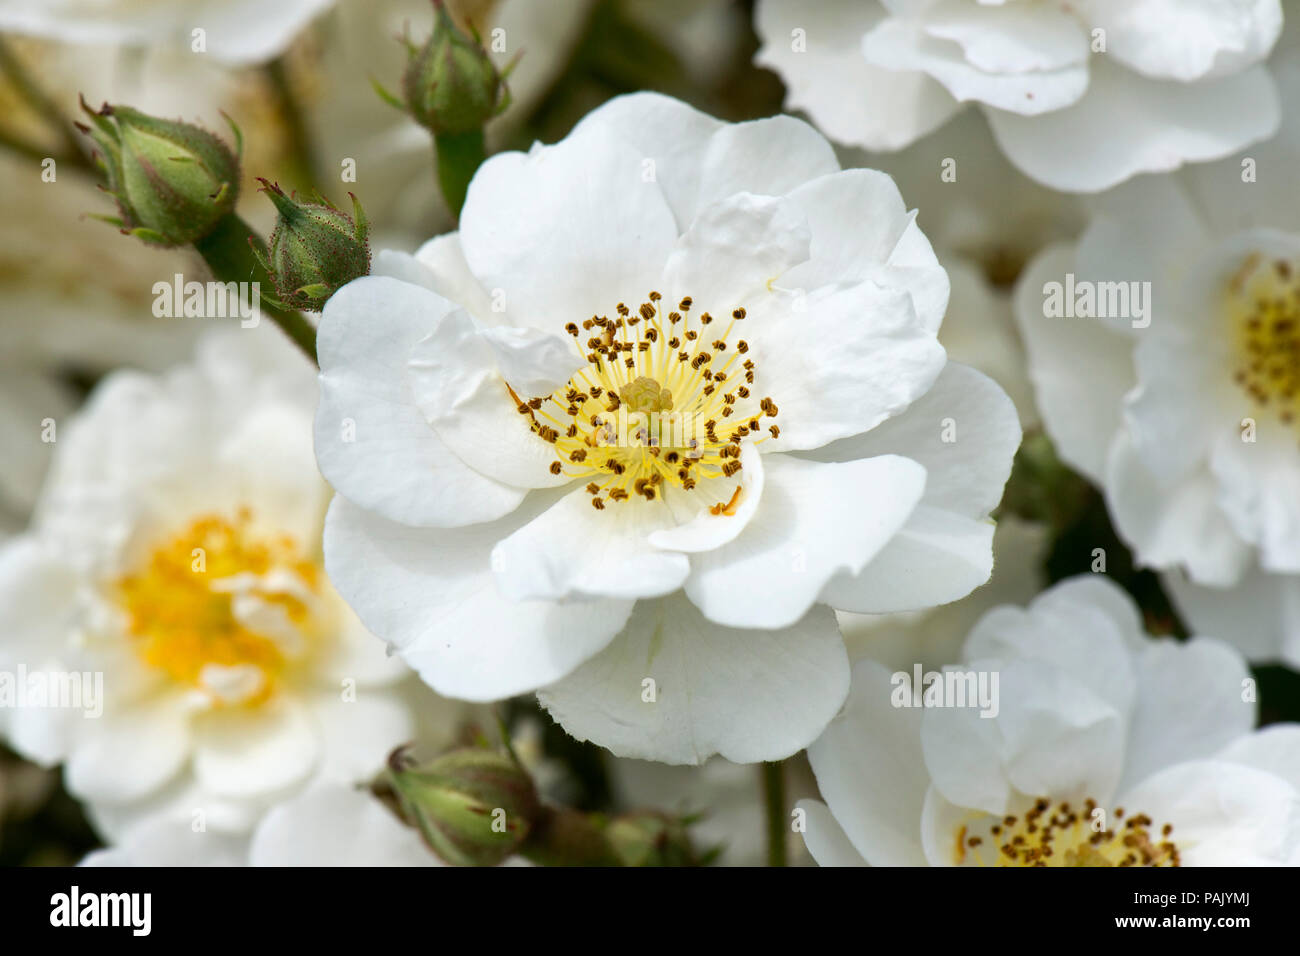 White rambling, climbing rose 'Rambling Rector' with profuse flowers with yellow centres.  Attractive to bees and other pollinators. - Stock Image